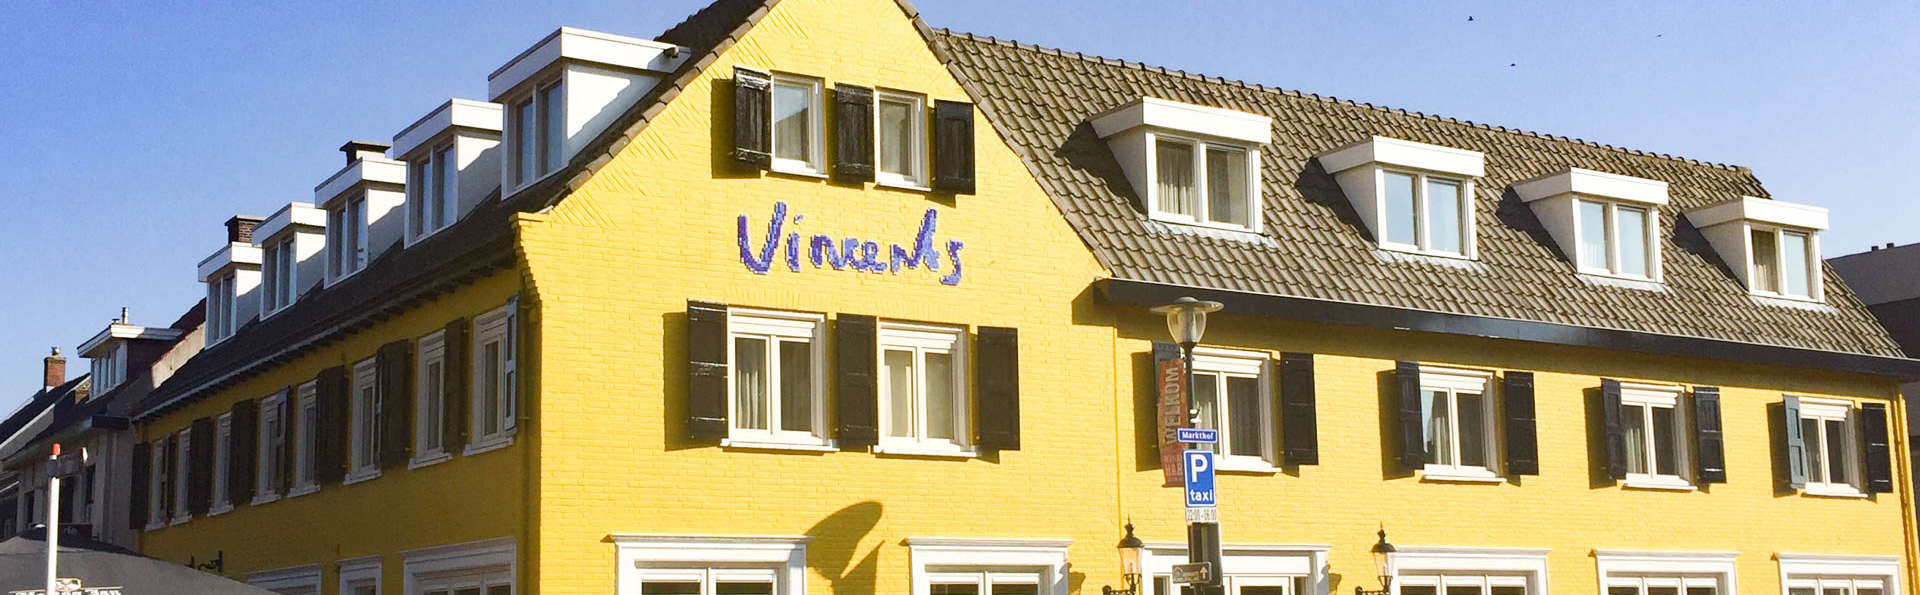 Vincents - EDIT_N2_FRONT.jpg